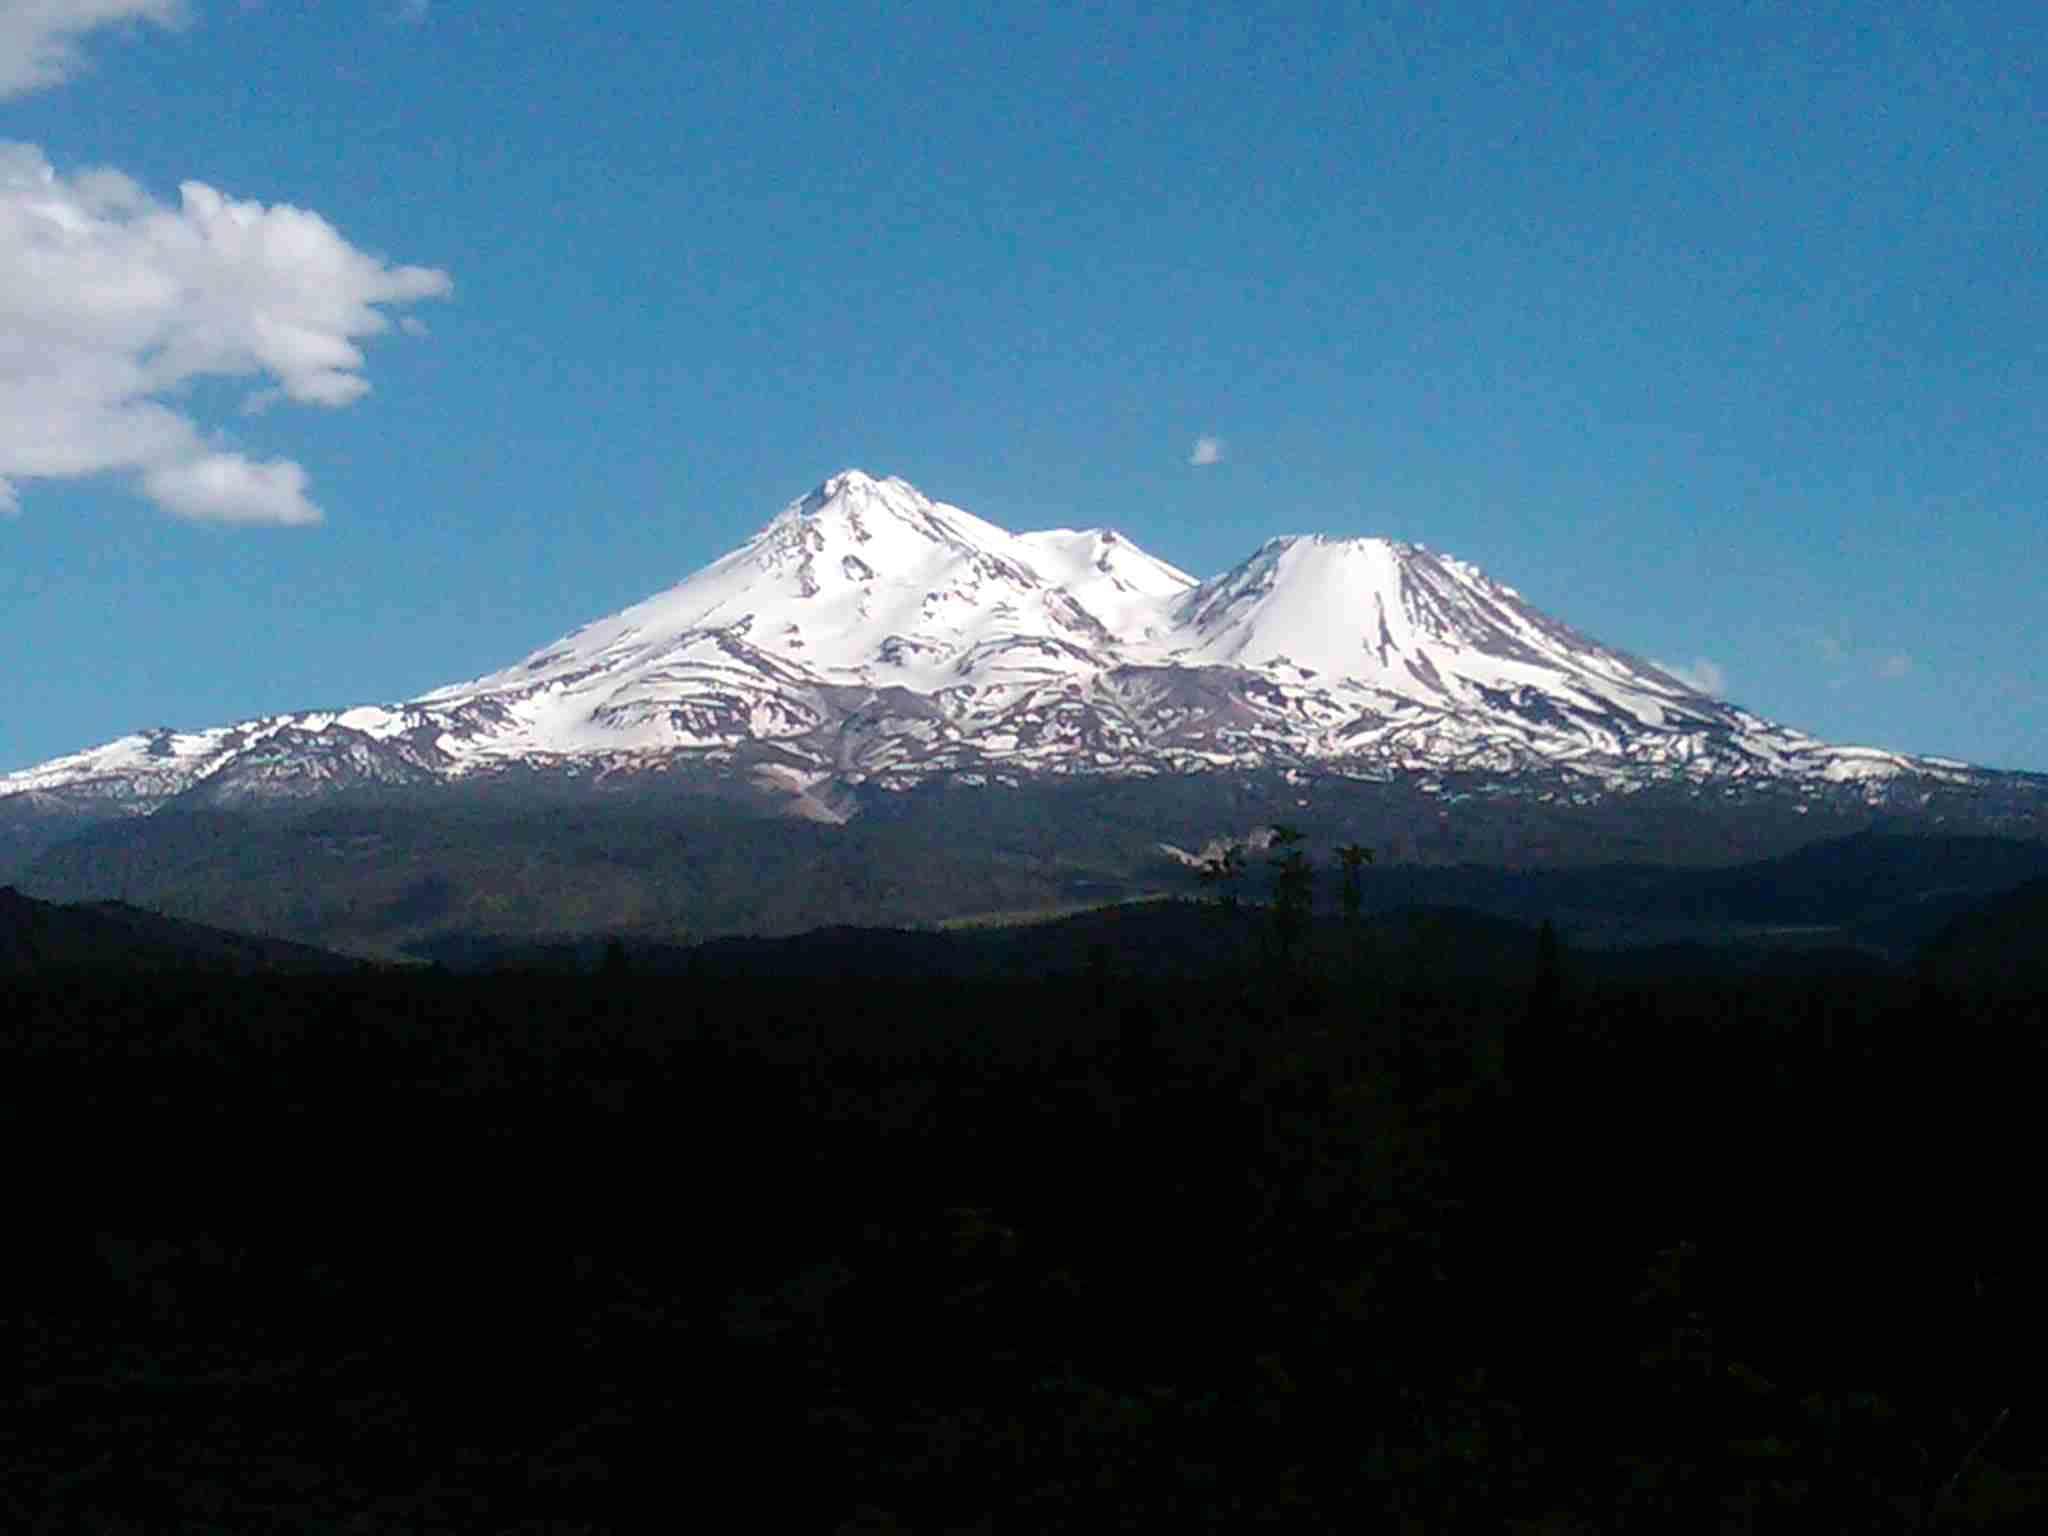 A Rookie\'s First Climb: What I Learned Summiting Shasta